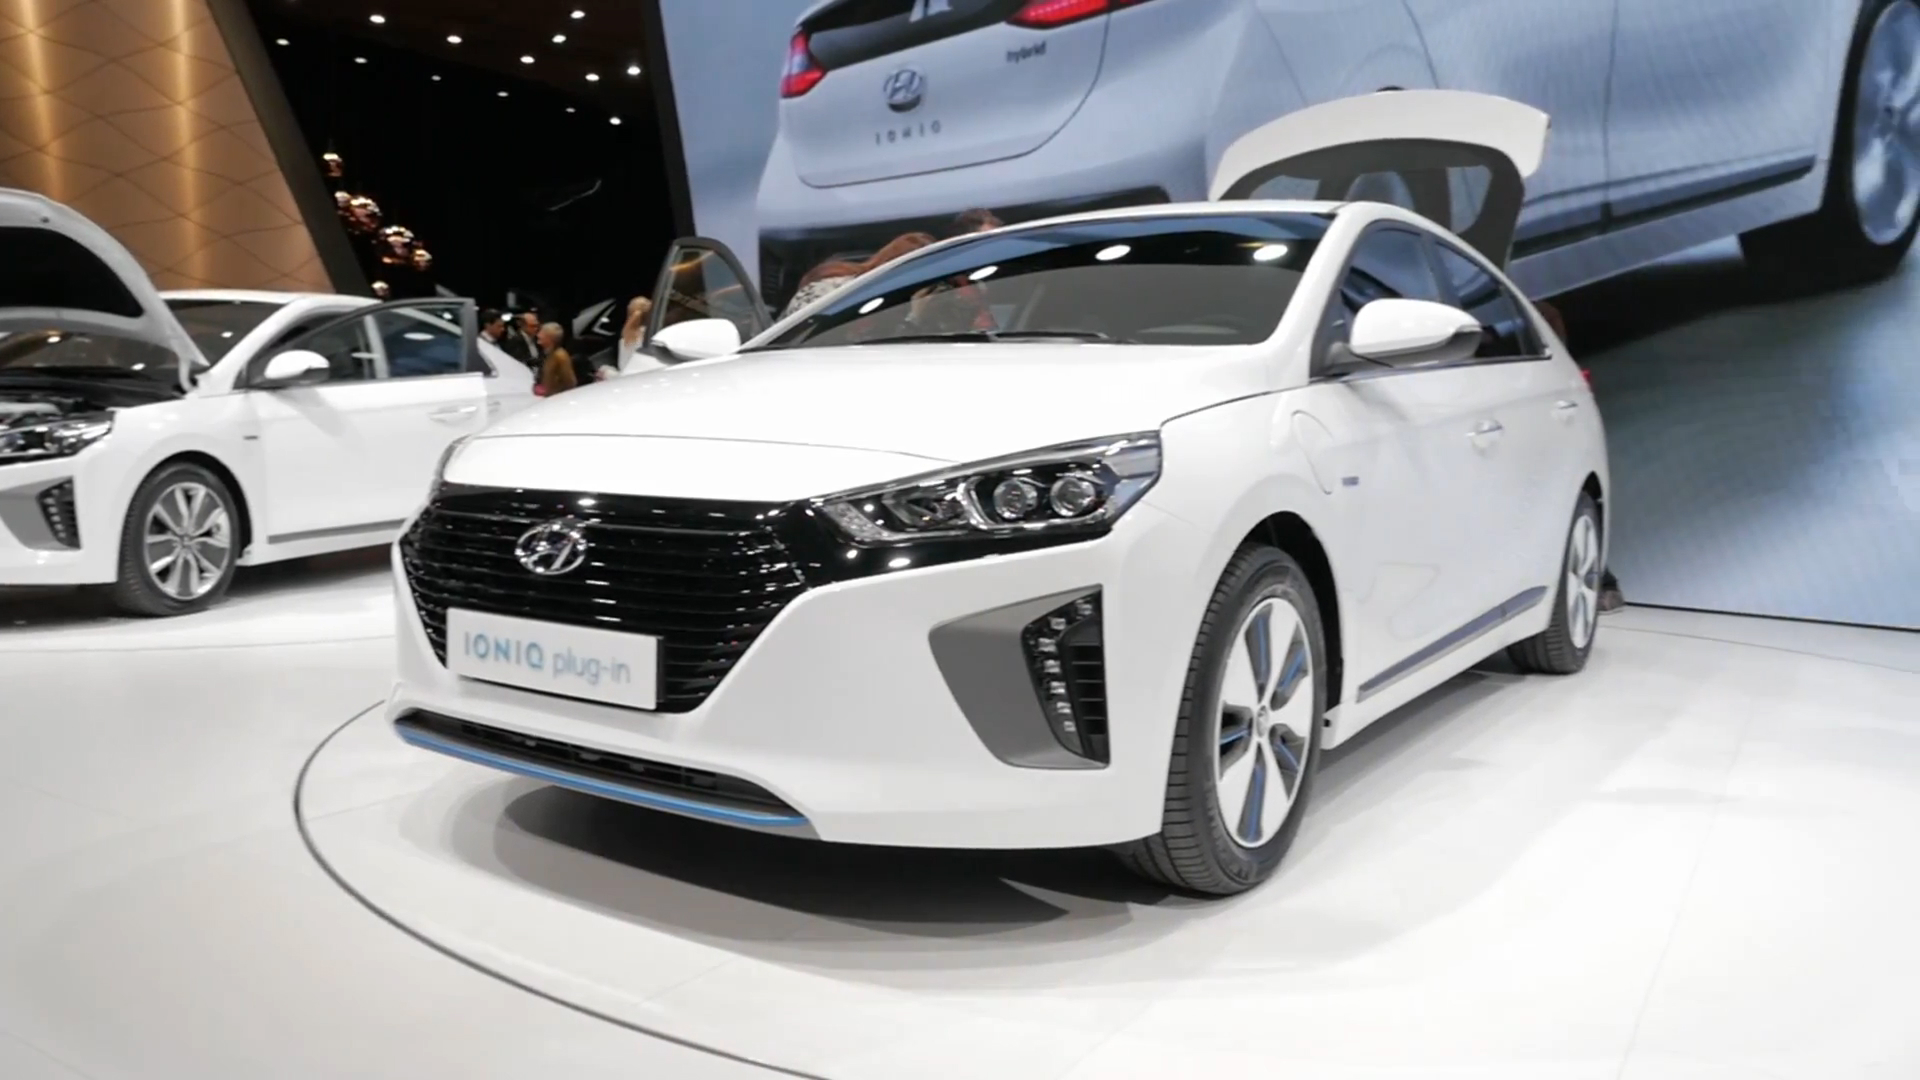 The 2017 Hyundai Ioniq Fuel Economy Numbers Are Official And Impressive